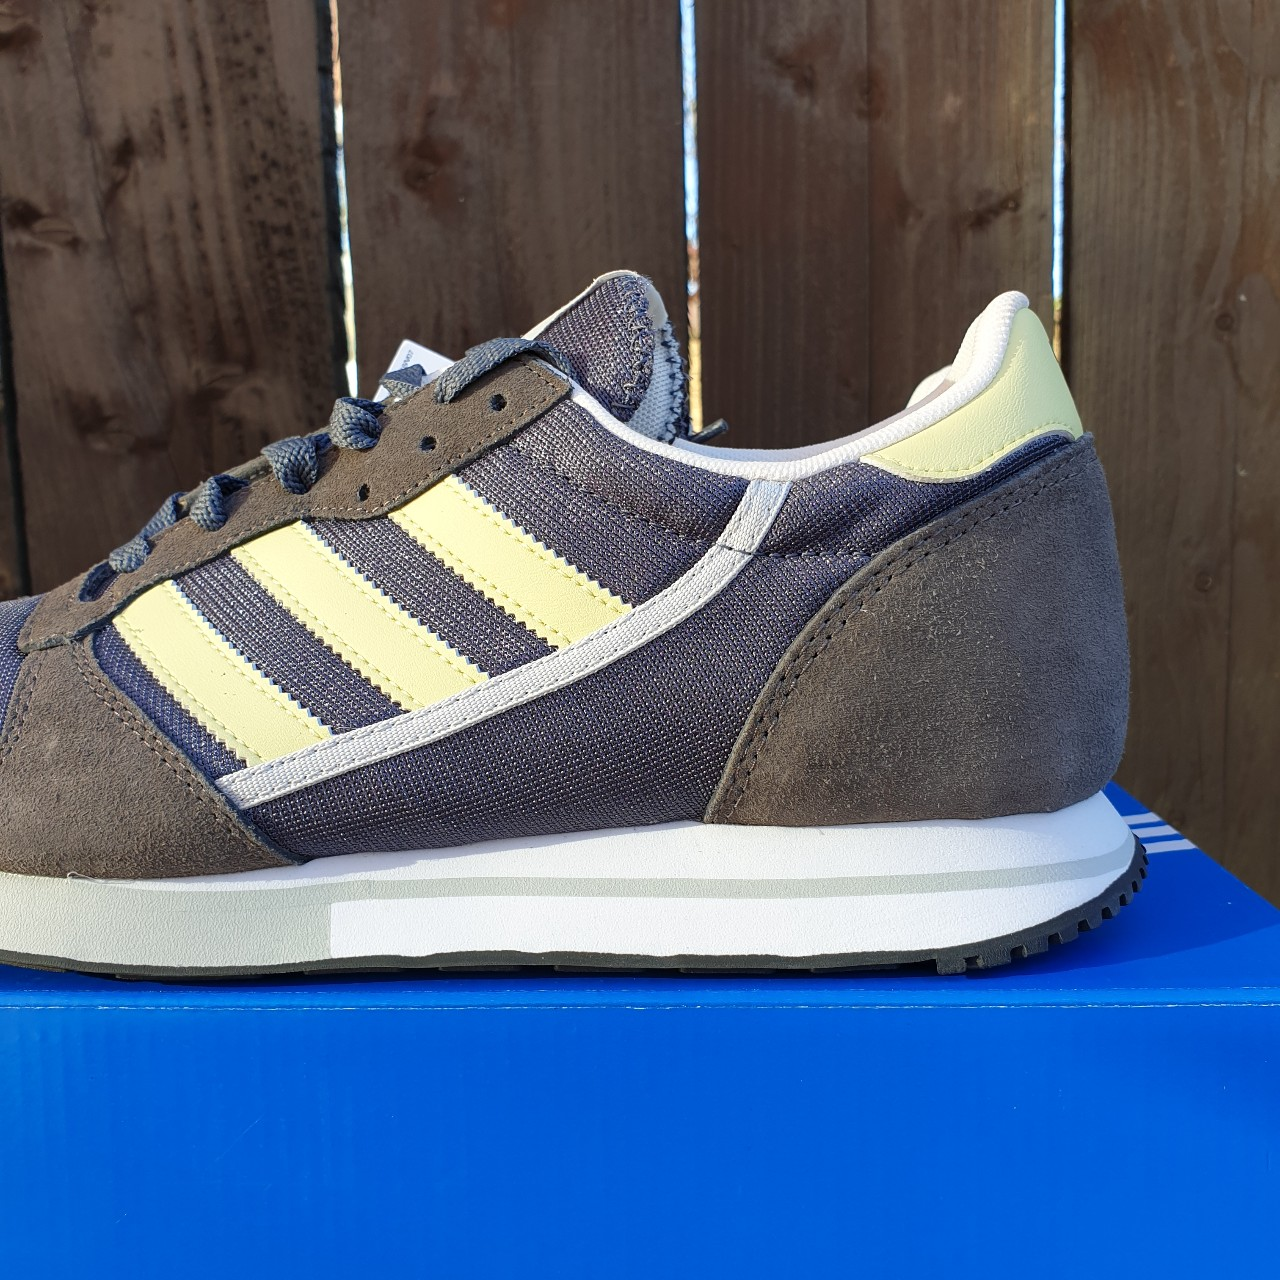 hot sale online e4573 c487b Adidas ZX 280 SPZL Fully boxed with tags Free UK... - Depop